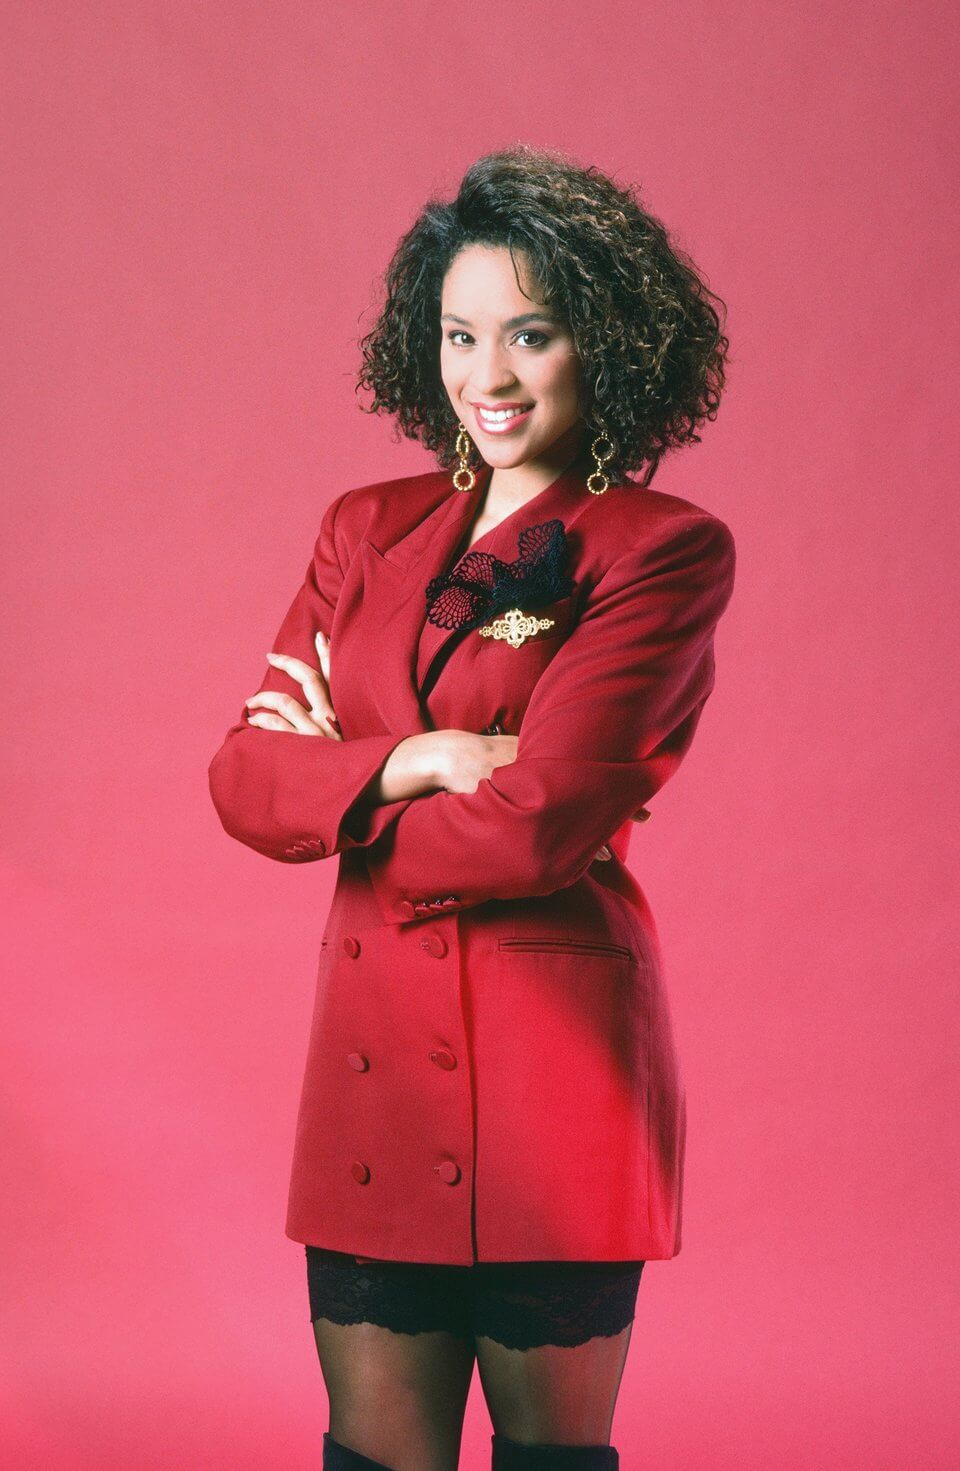 Karyn Parsons sexy red jacketKaryn Parsons sexy red jacket